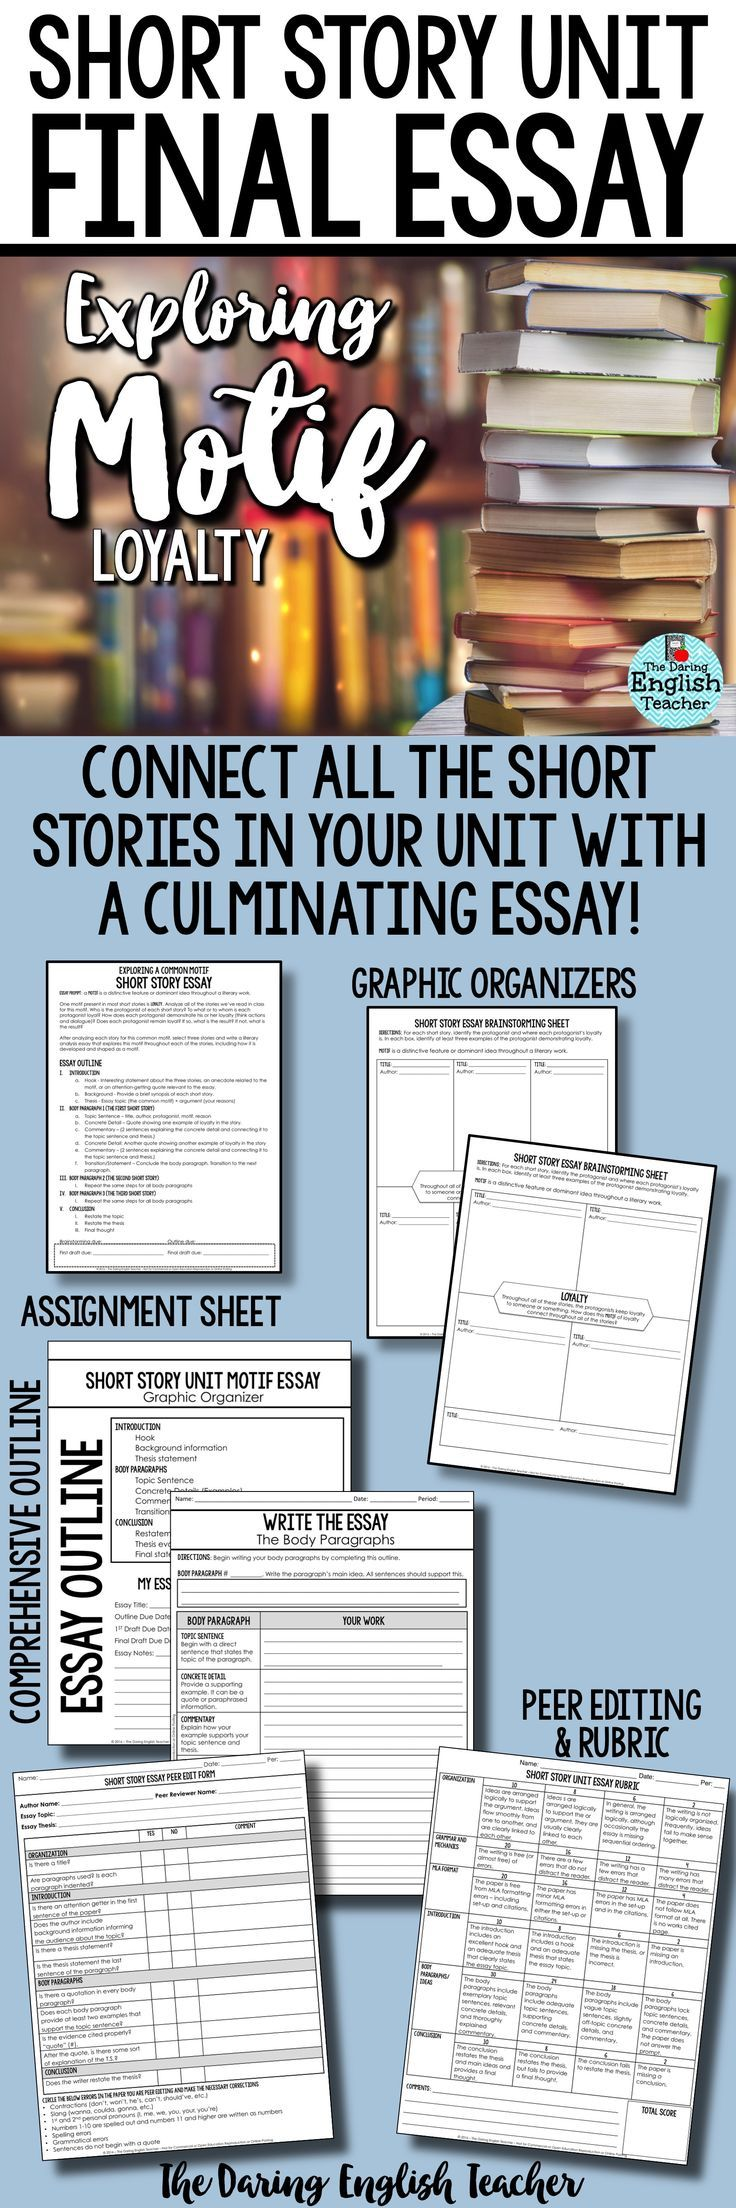 Science And Technology Essays Short Story Unit Final Essay Analyzing Motif Loyalty High School Persuasive Essay Topics also Photosynthesis Essay  Best Short Stories For High School Students Images On  Essays About Health Care